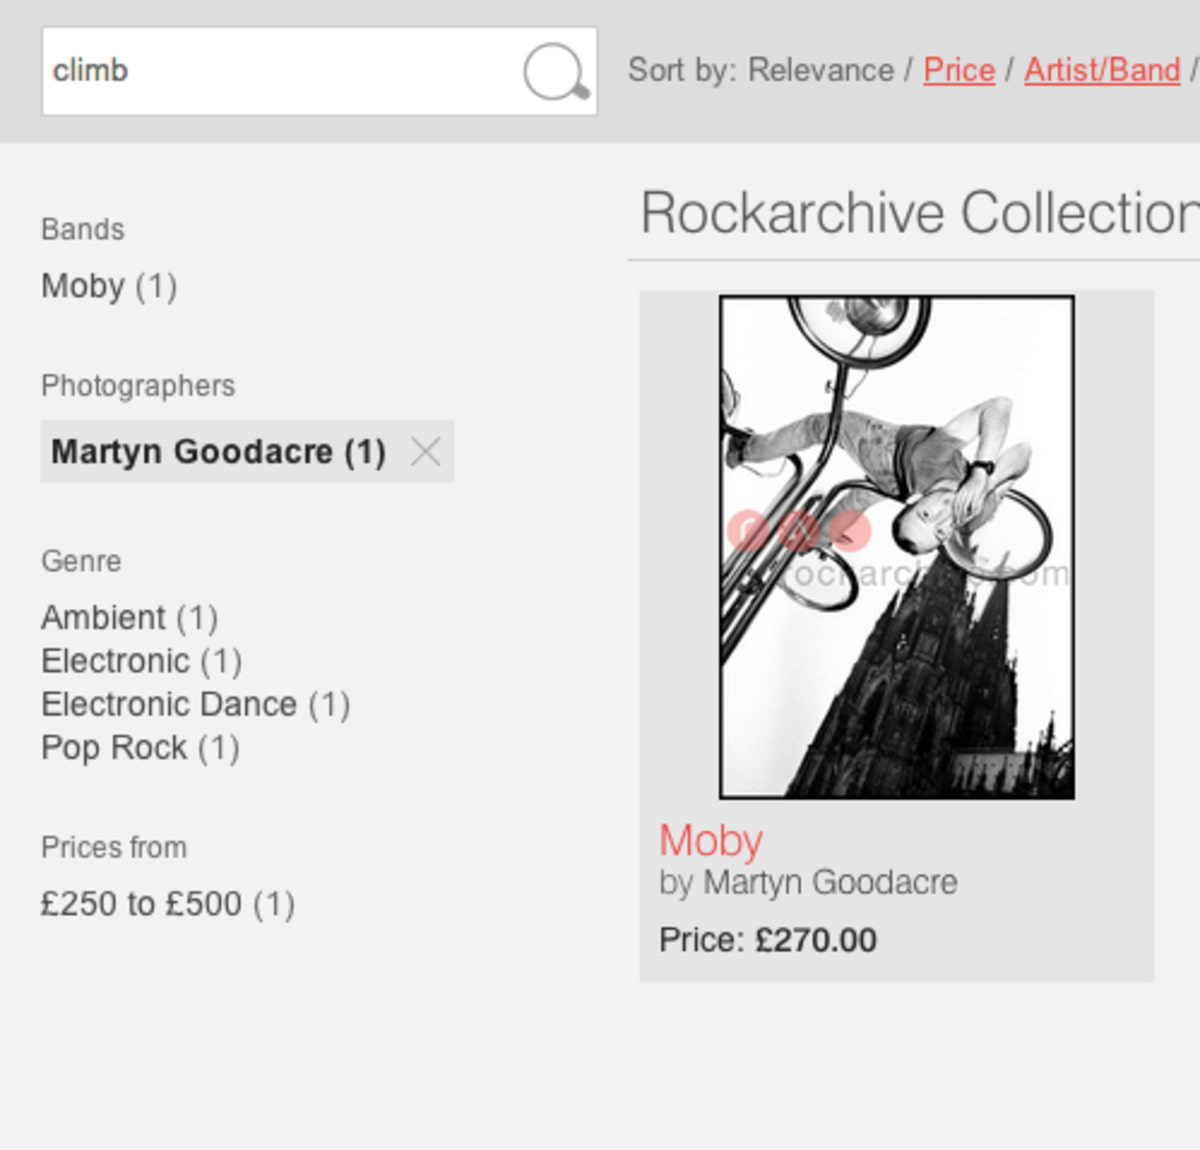 Rock archive search